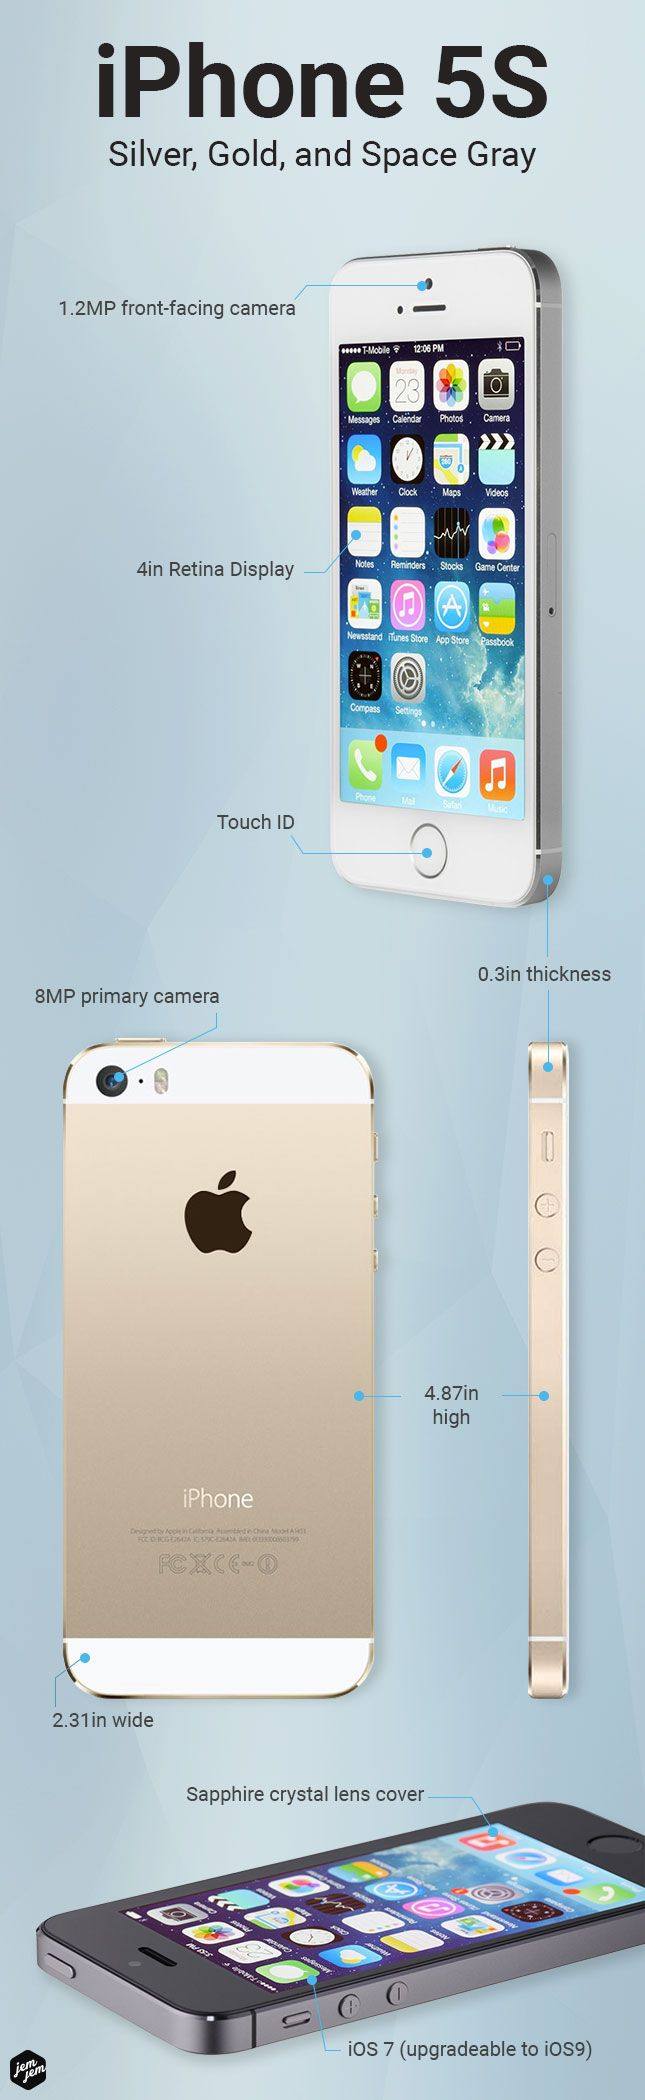 The iPhone 5s is an awesome phone! Grab one today at JemJem.com.